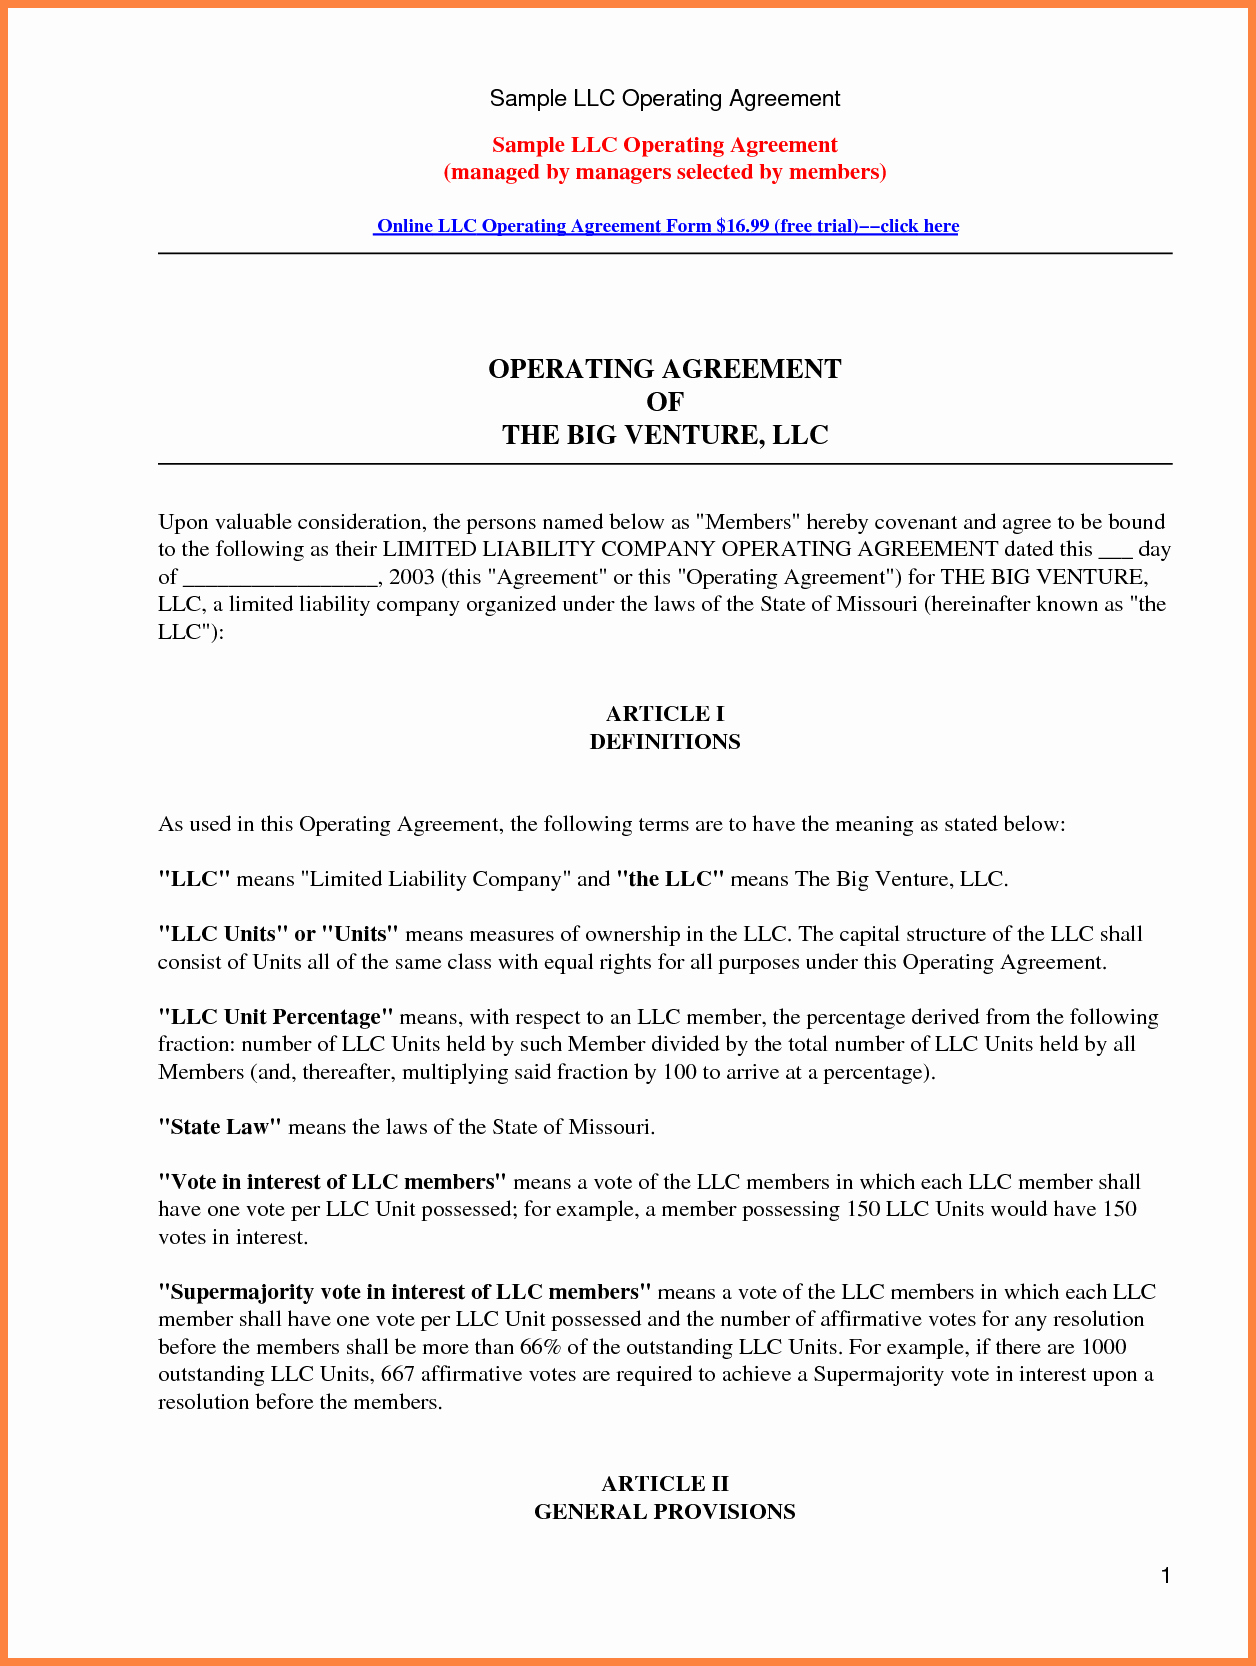 S Corporation Operating Agreement Template Beautiful 10 Small Business Operating Agreement Template